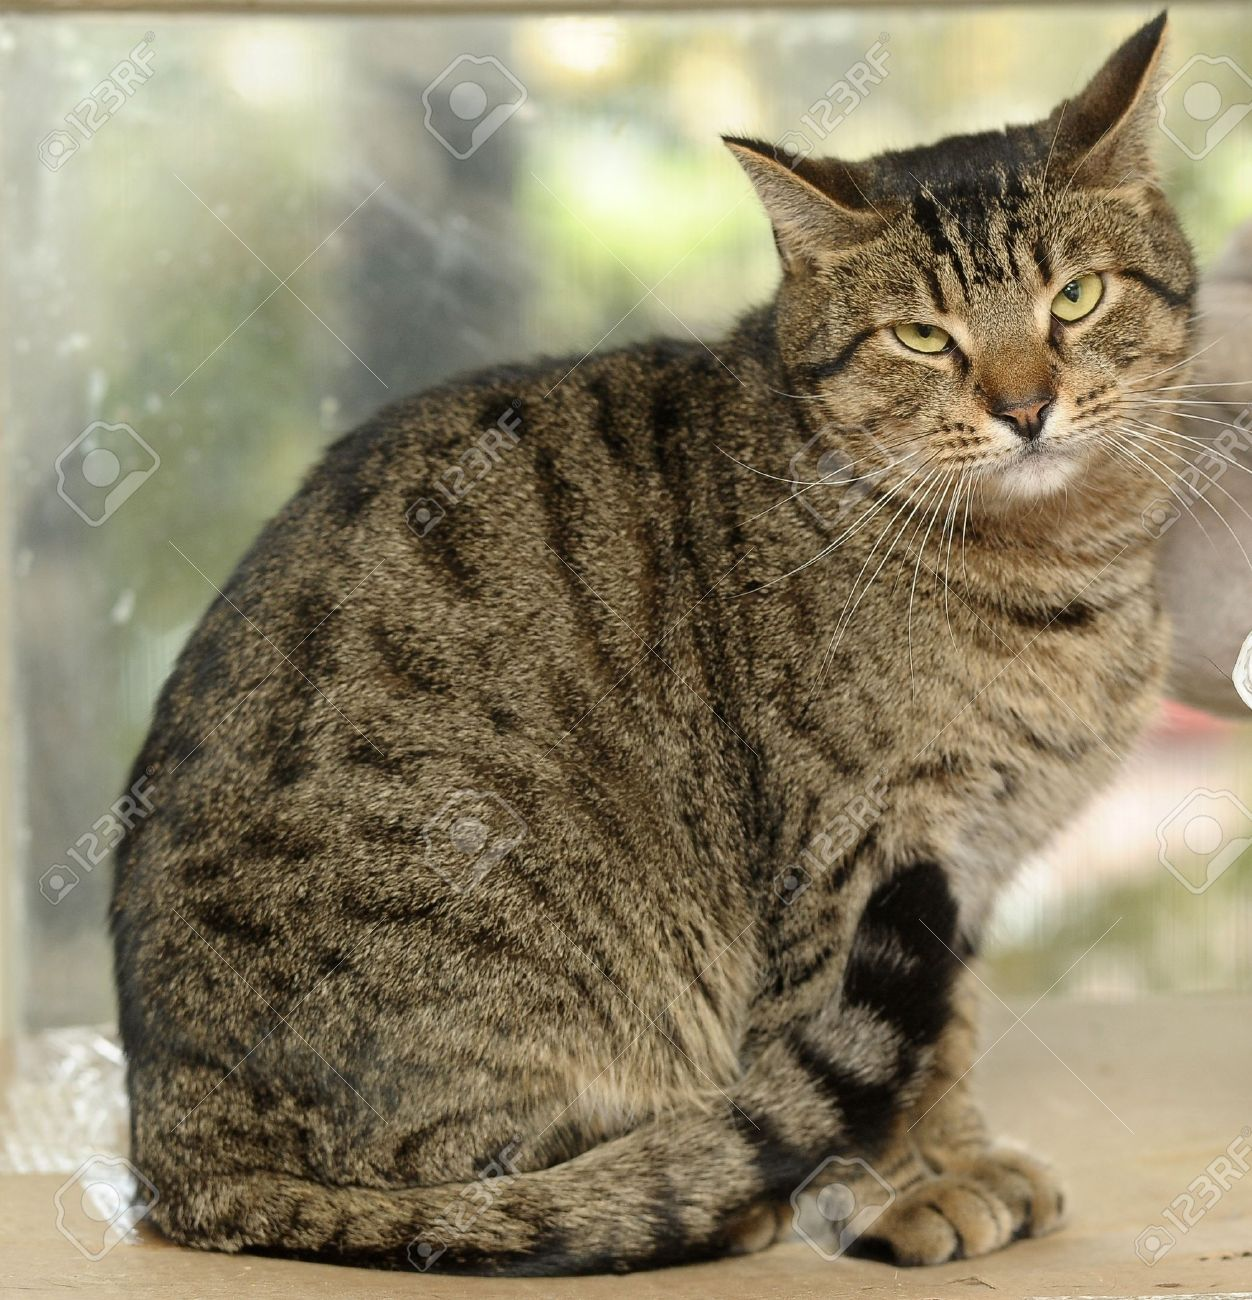 tabby cat stock photo picture and royalty free image image 15806352